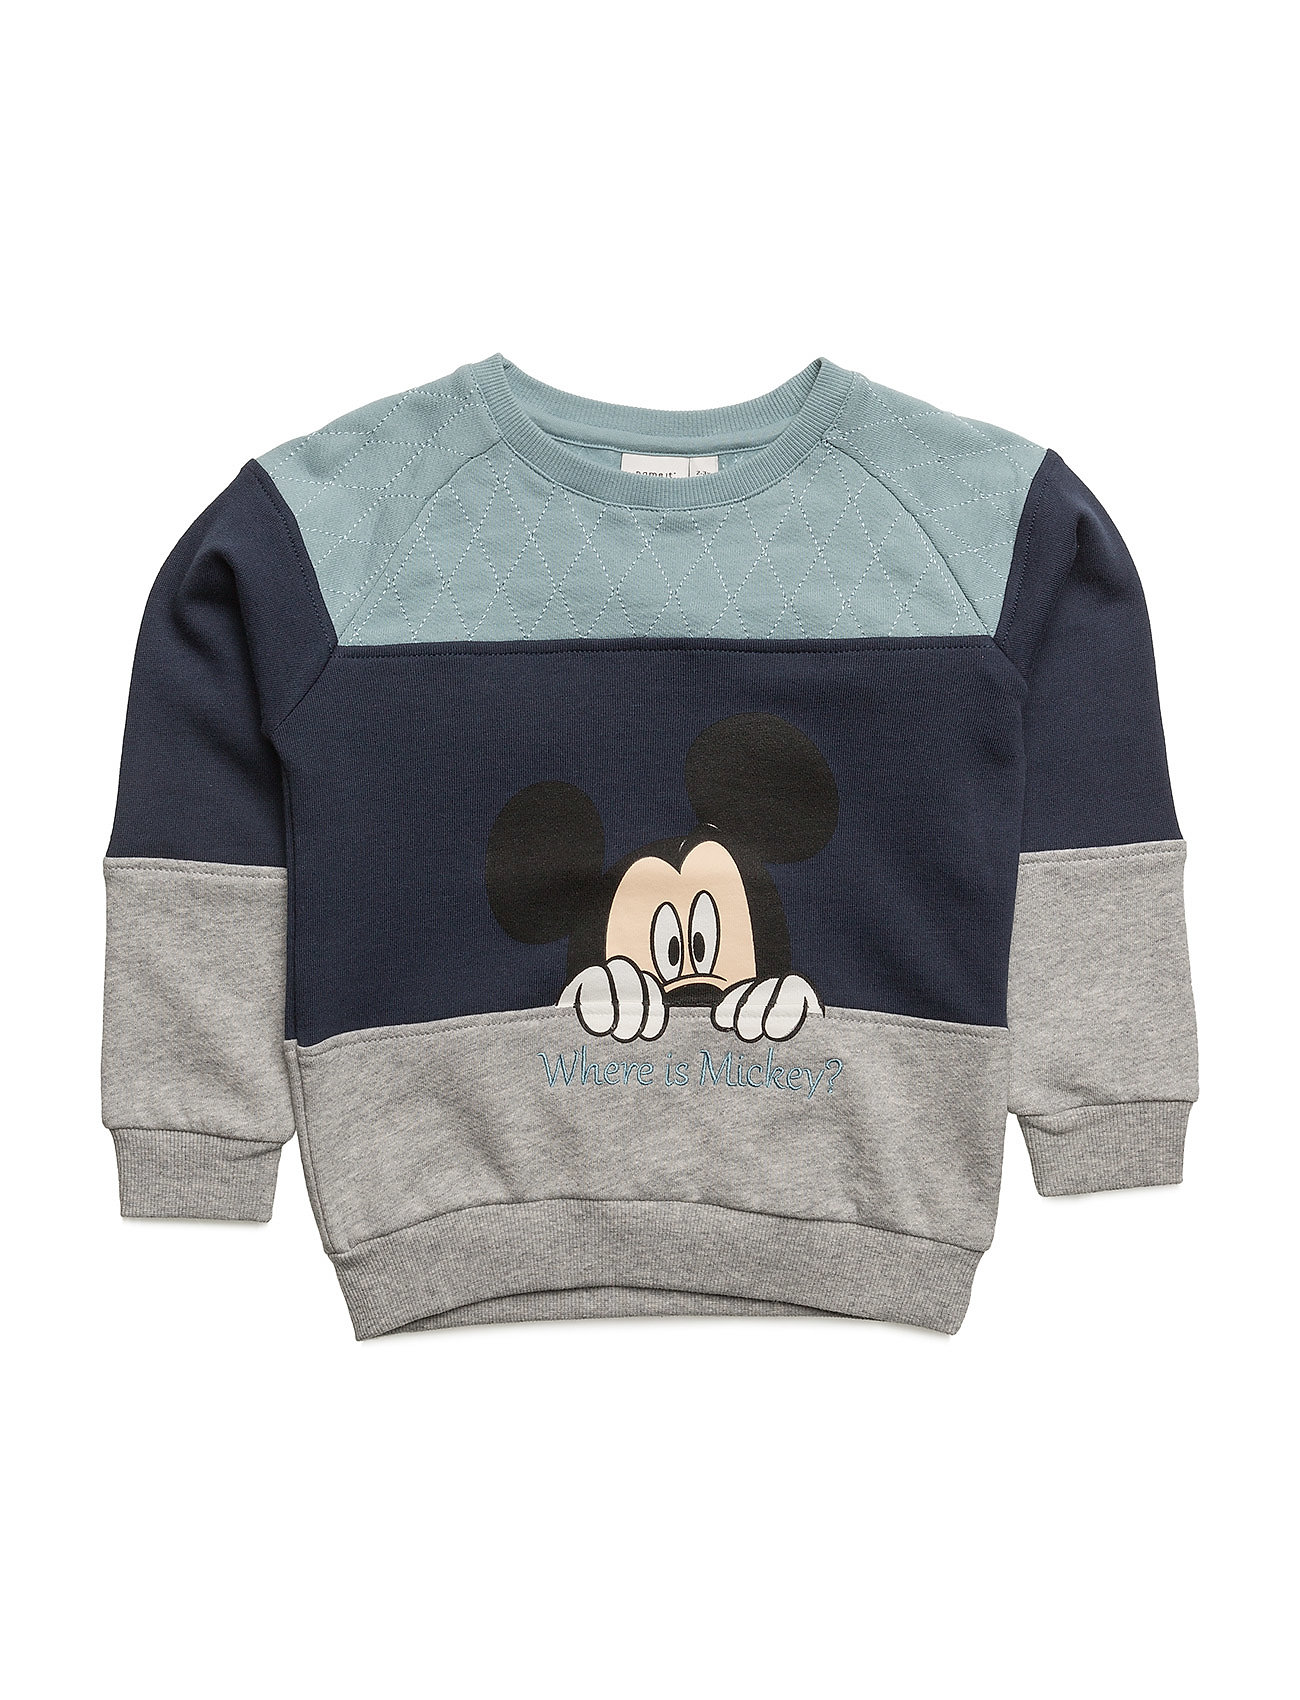 name it – Nitmickey calv swe bru m mini wdi på boozt.com dk